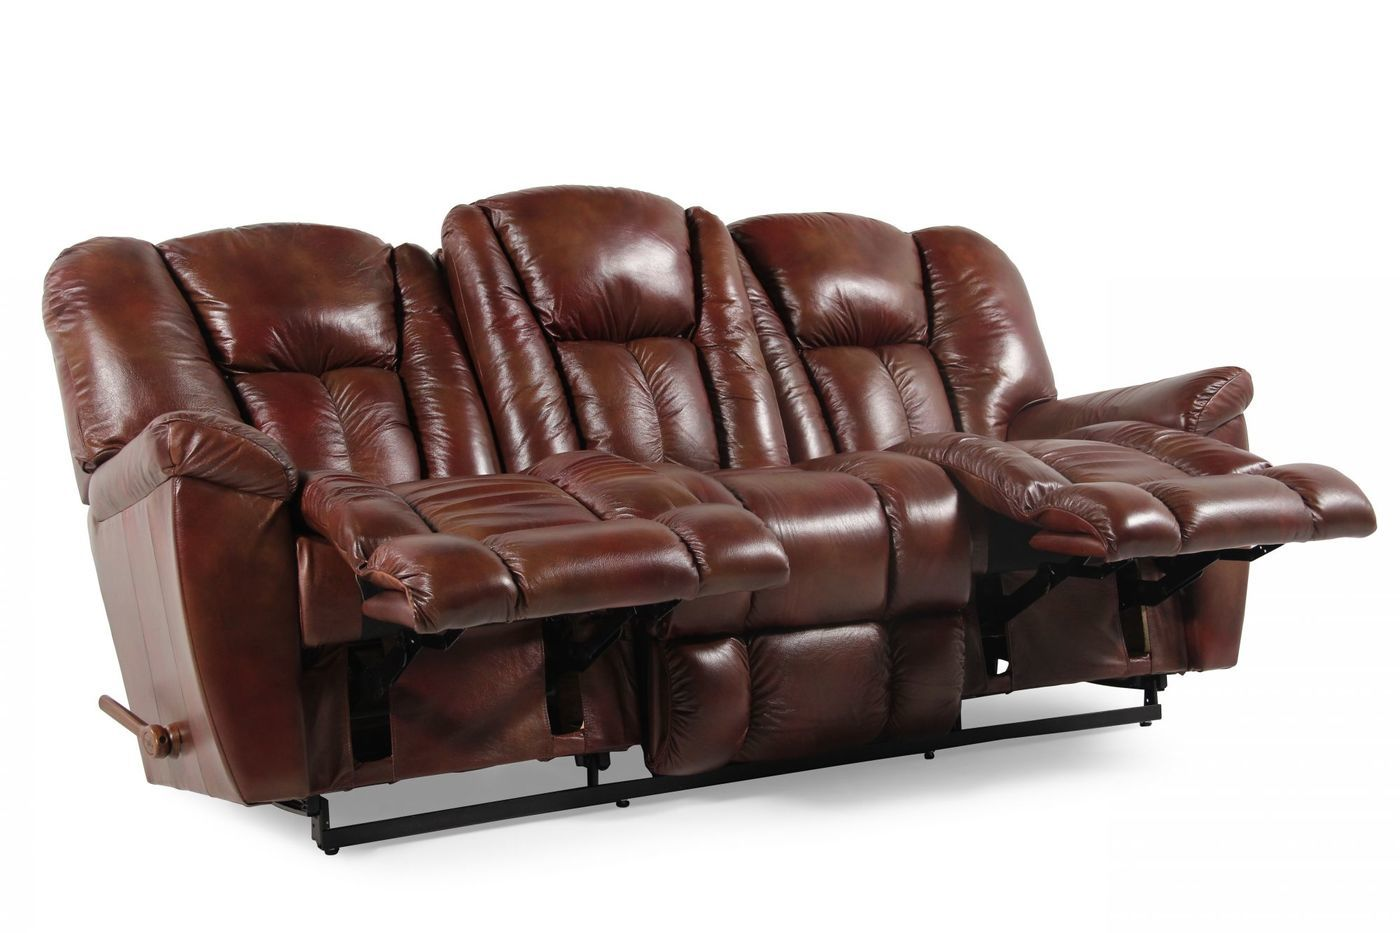 lovely brown sectional sofa picture-Elegant Brown Sectional sofa Online